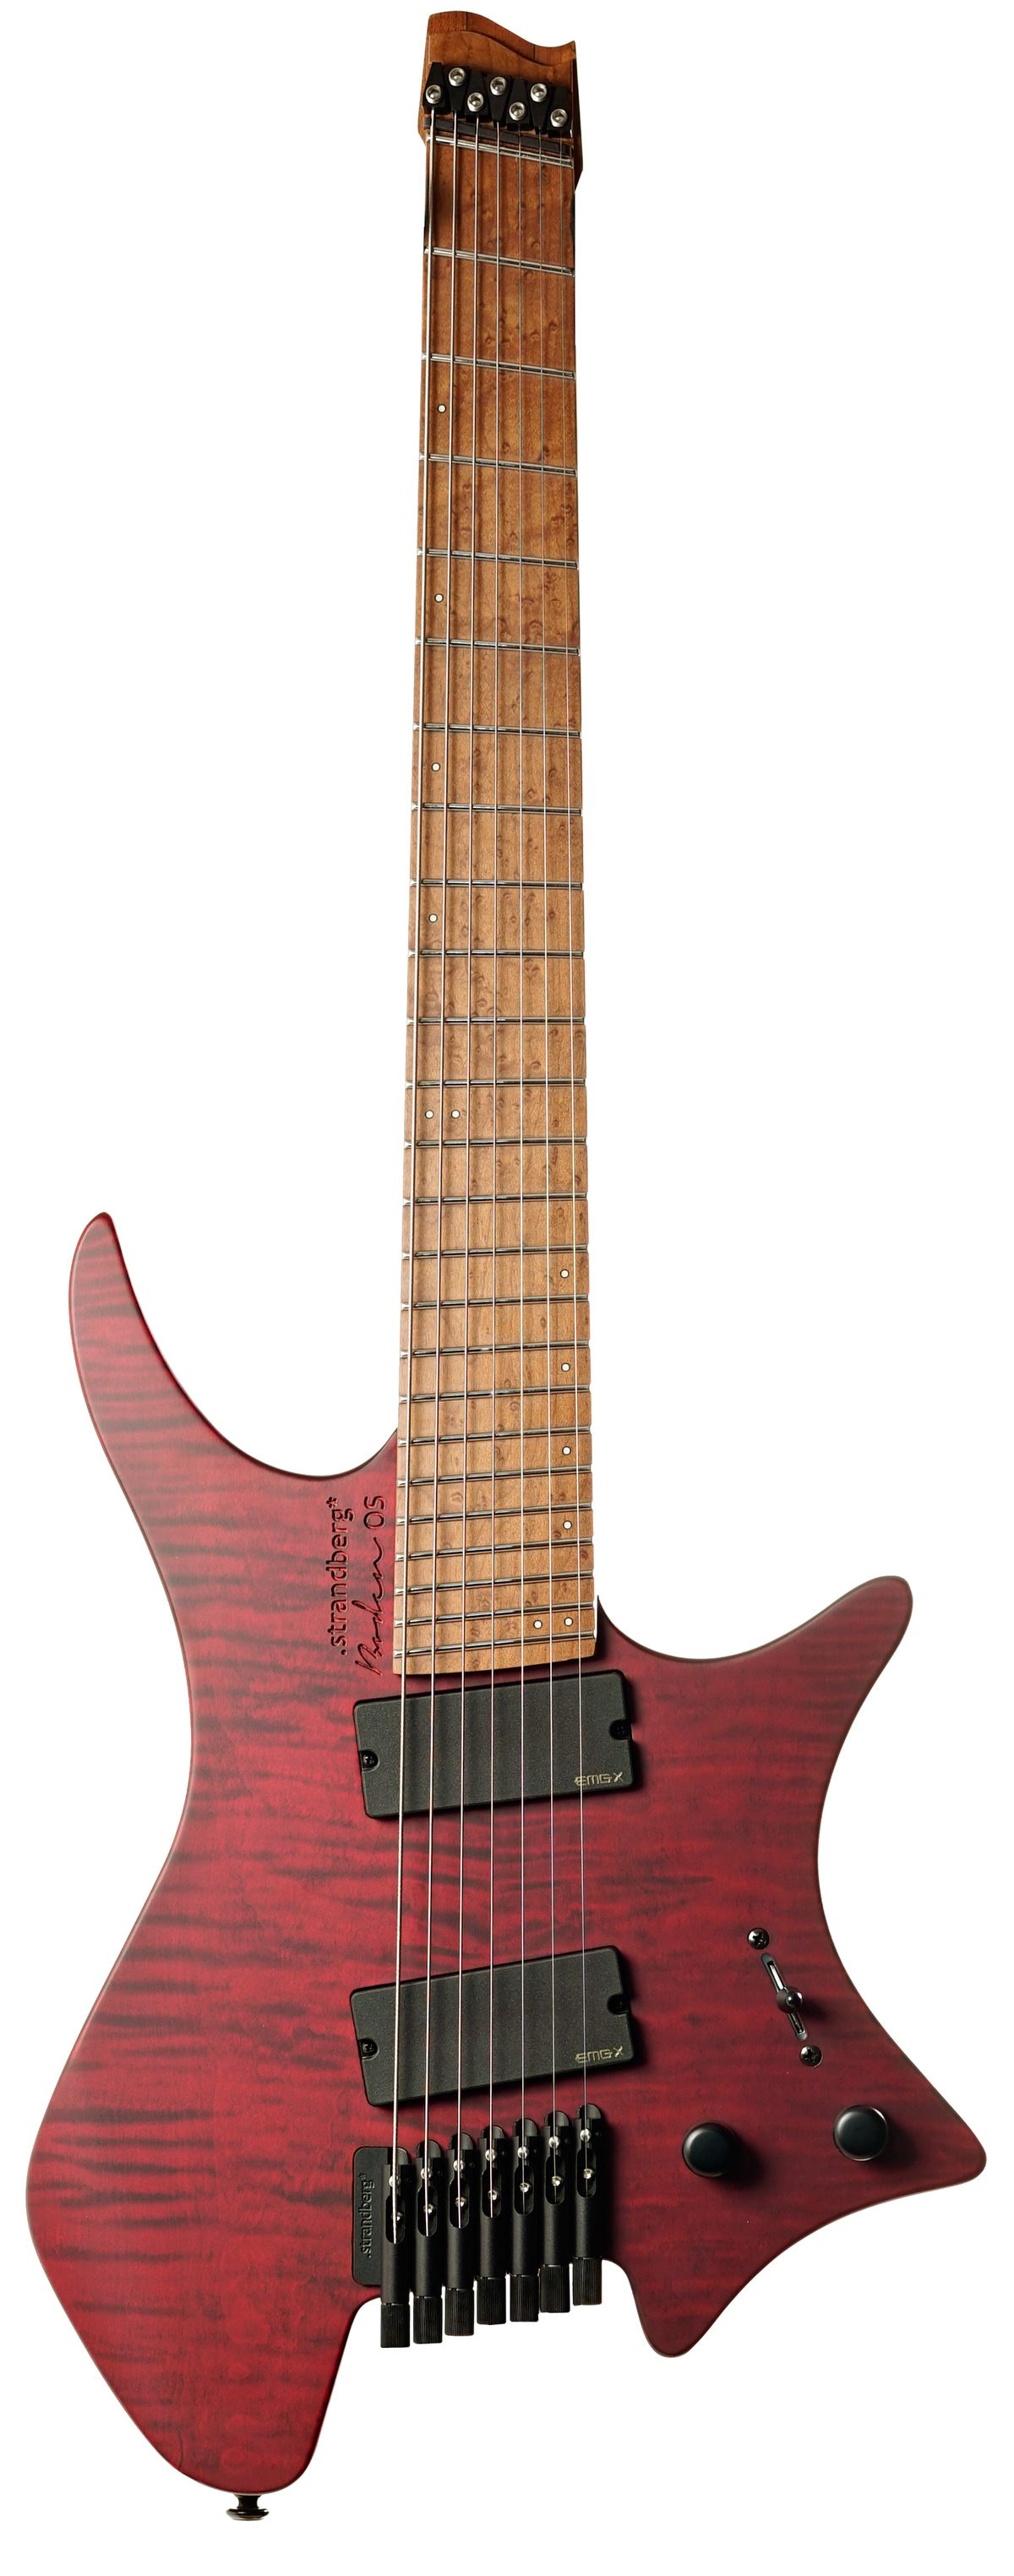 Strandberg boden os 7 special edition red maple for Strandberg boden 7